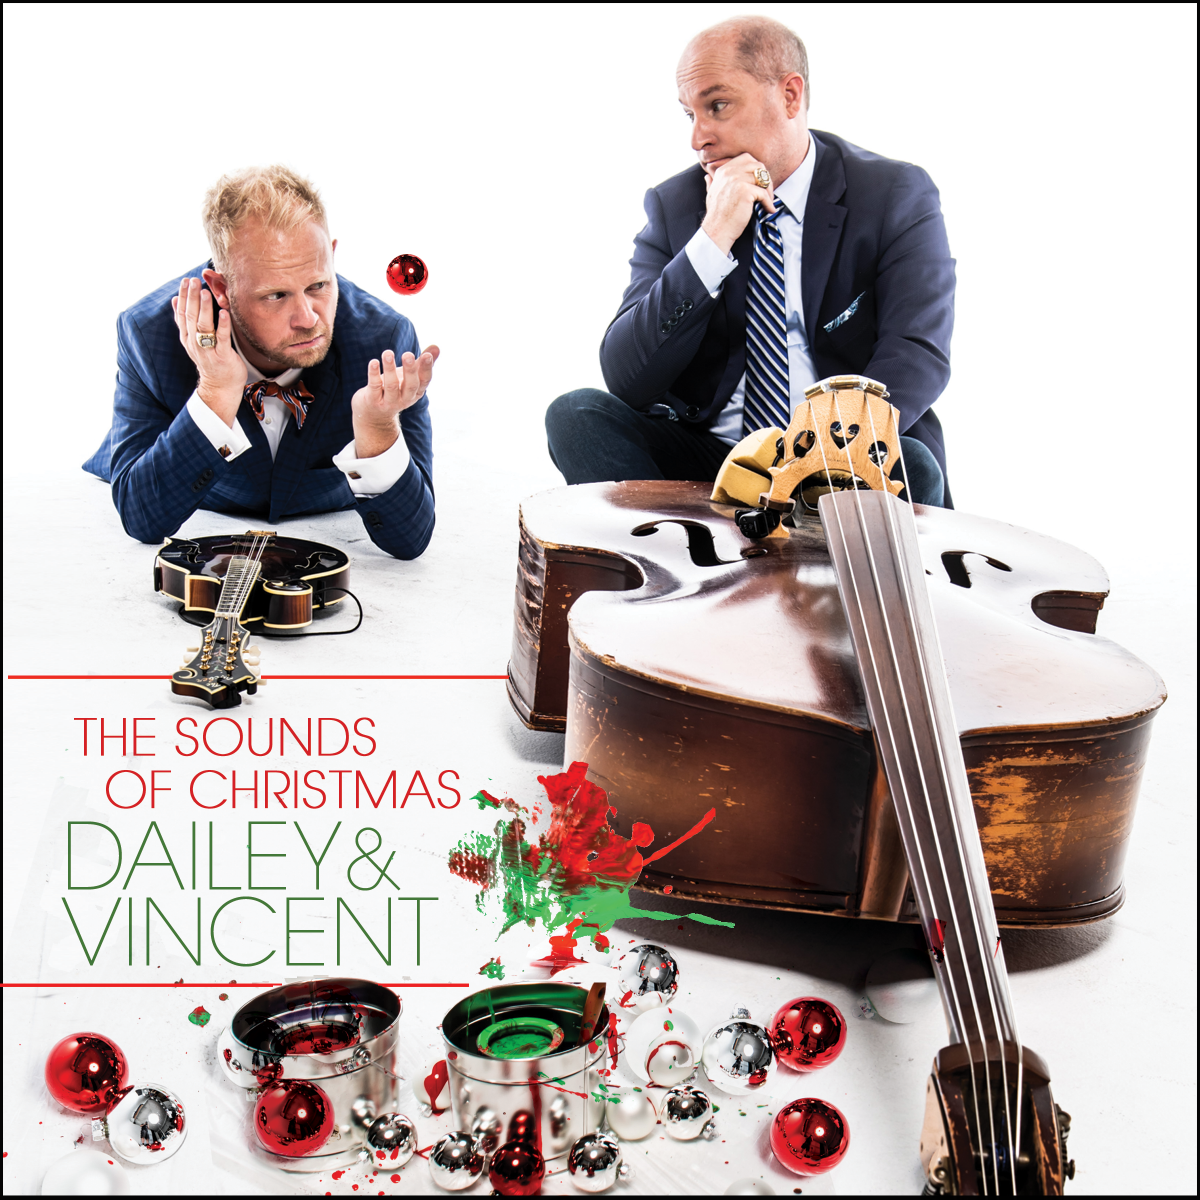 Dolly Parton Christmas Album.Dailey Vincent S New Christmas Album Featuring Dolly